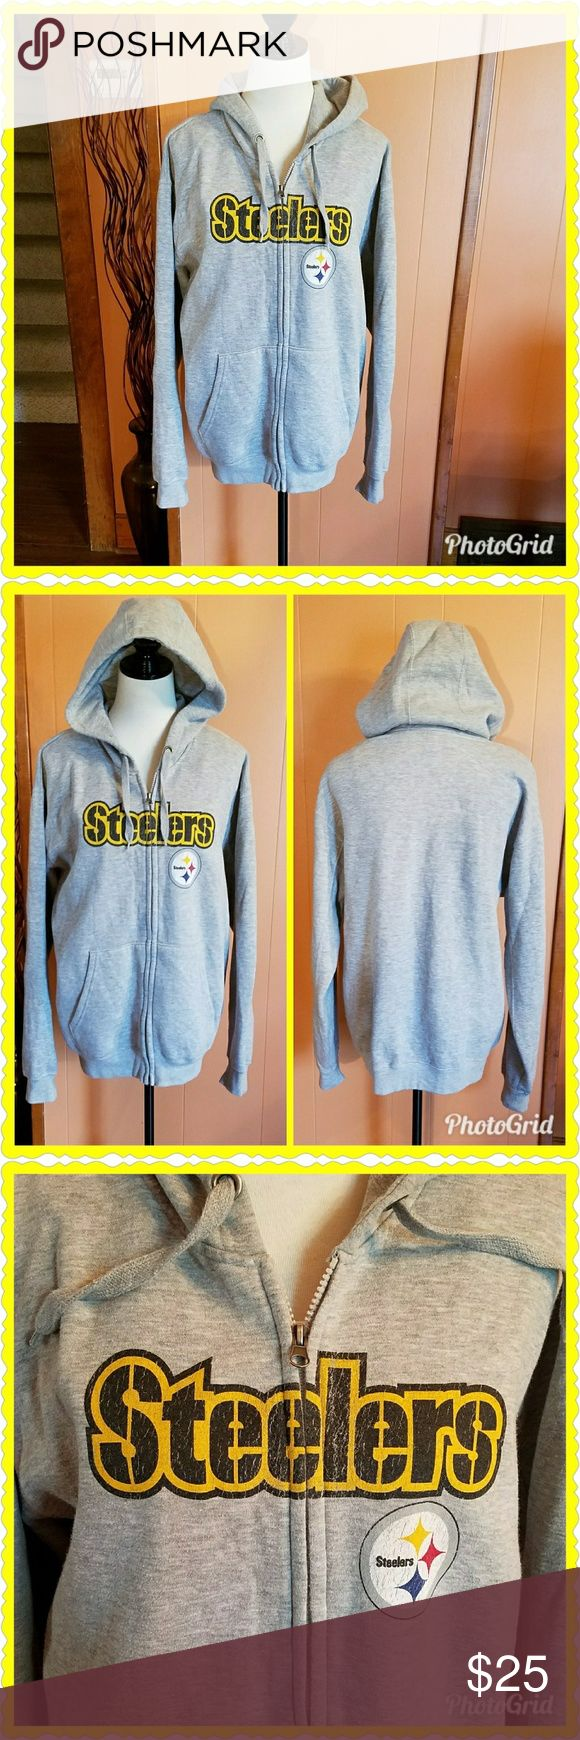 Gray Pittsburgh Steelers hoodie This gray zip-up hoodie is heavy and warm. Full zip front. The tag does not have the size listed, but I am positive this is an extra large. Excellent used condition. NFL Tops Sweatshirts & Hoodies